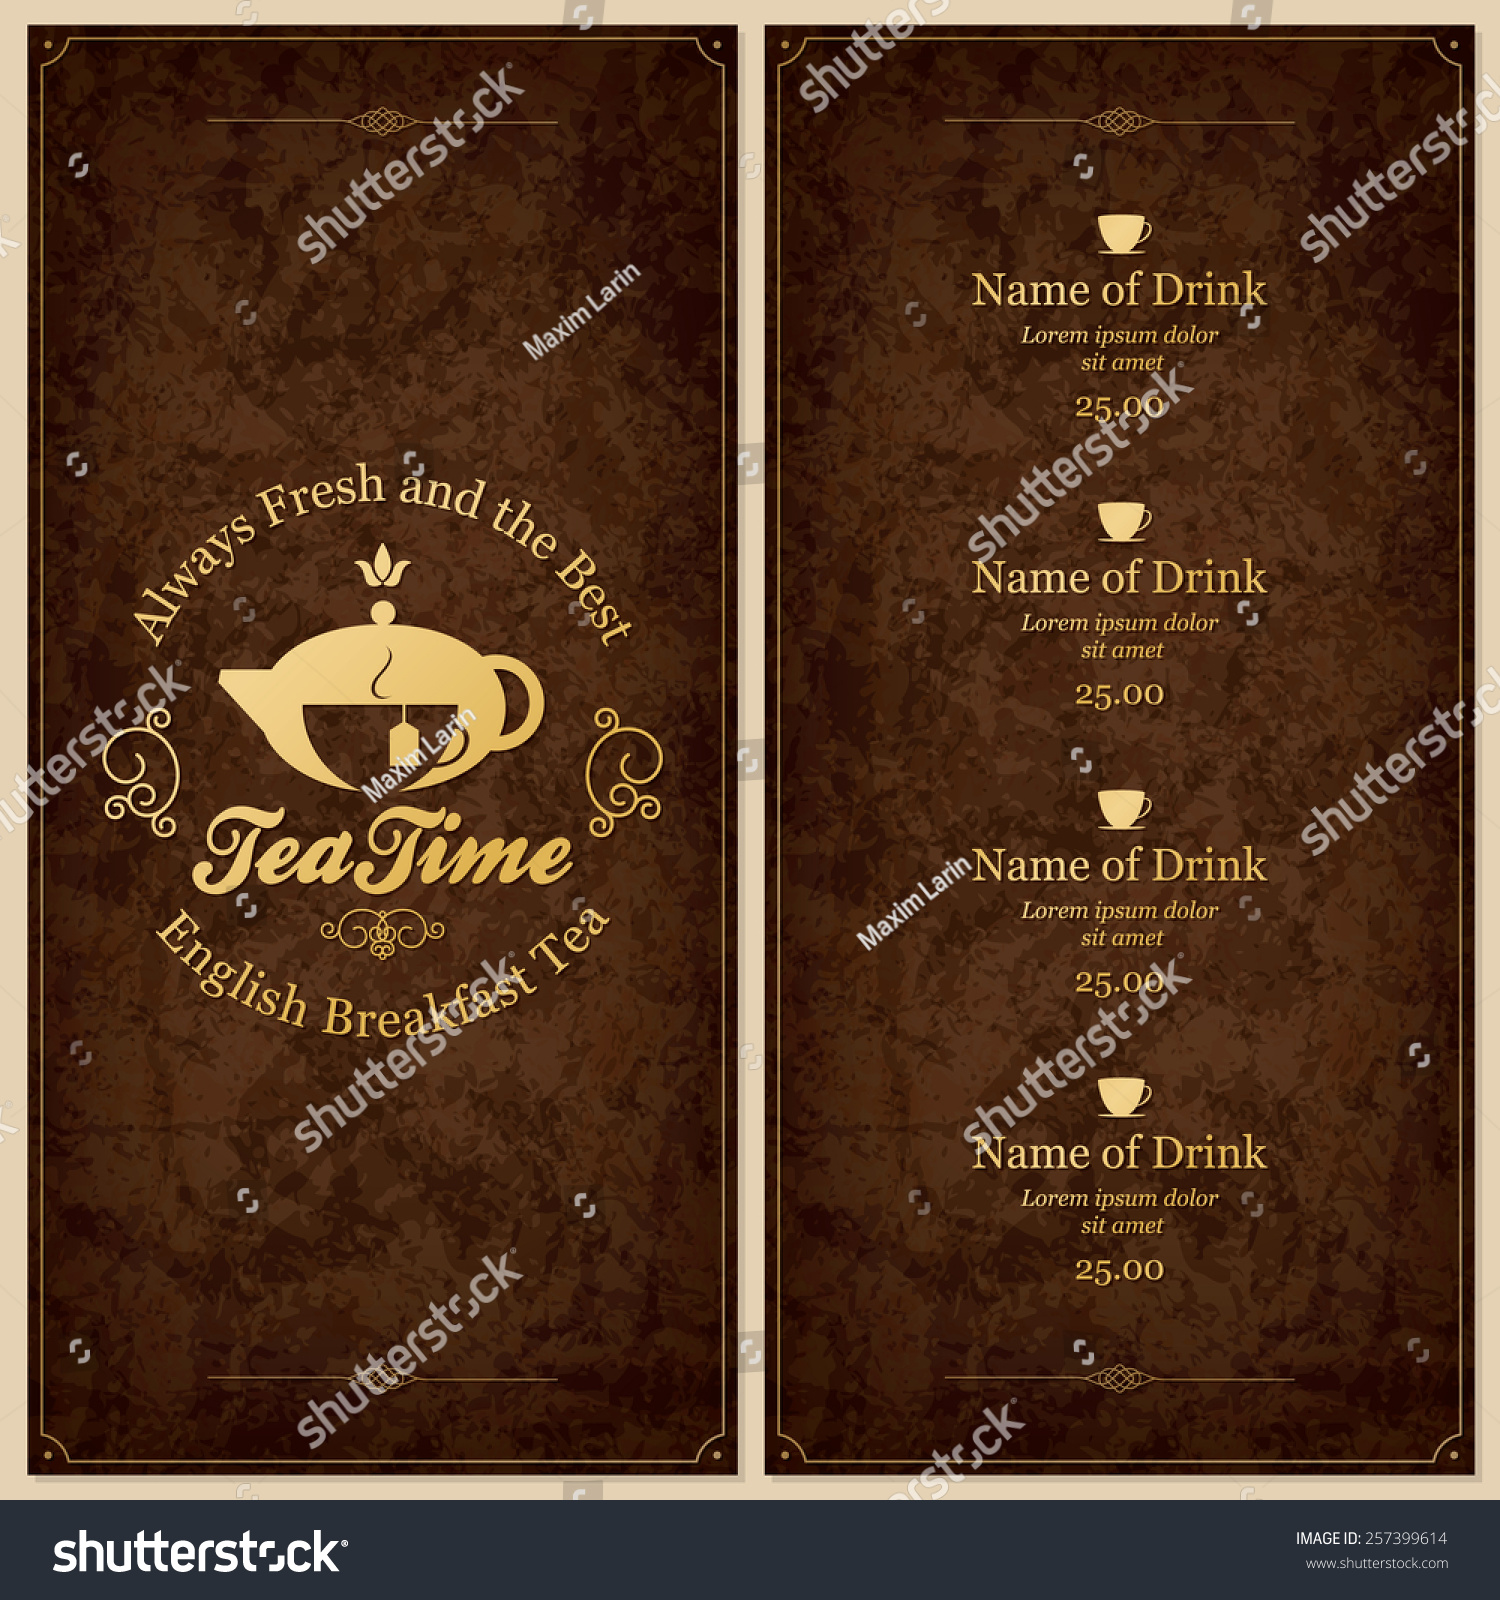 restaurant coffee house menu design vector stock vector 257399614 restaurant or coffee house menu design vector brochure template for cafe coffee house